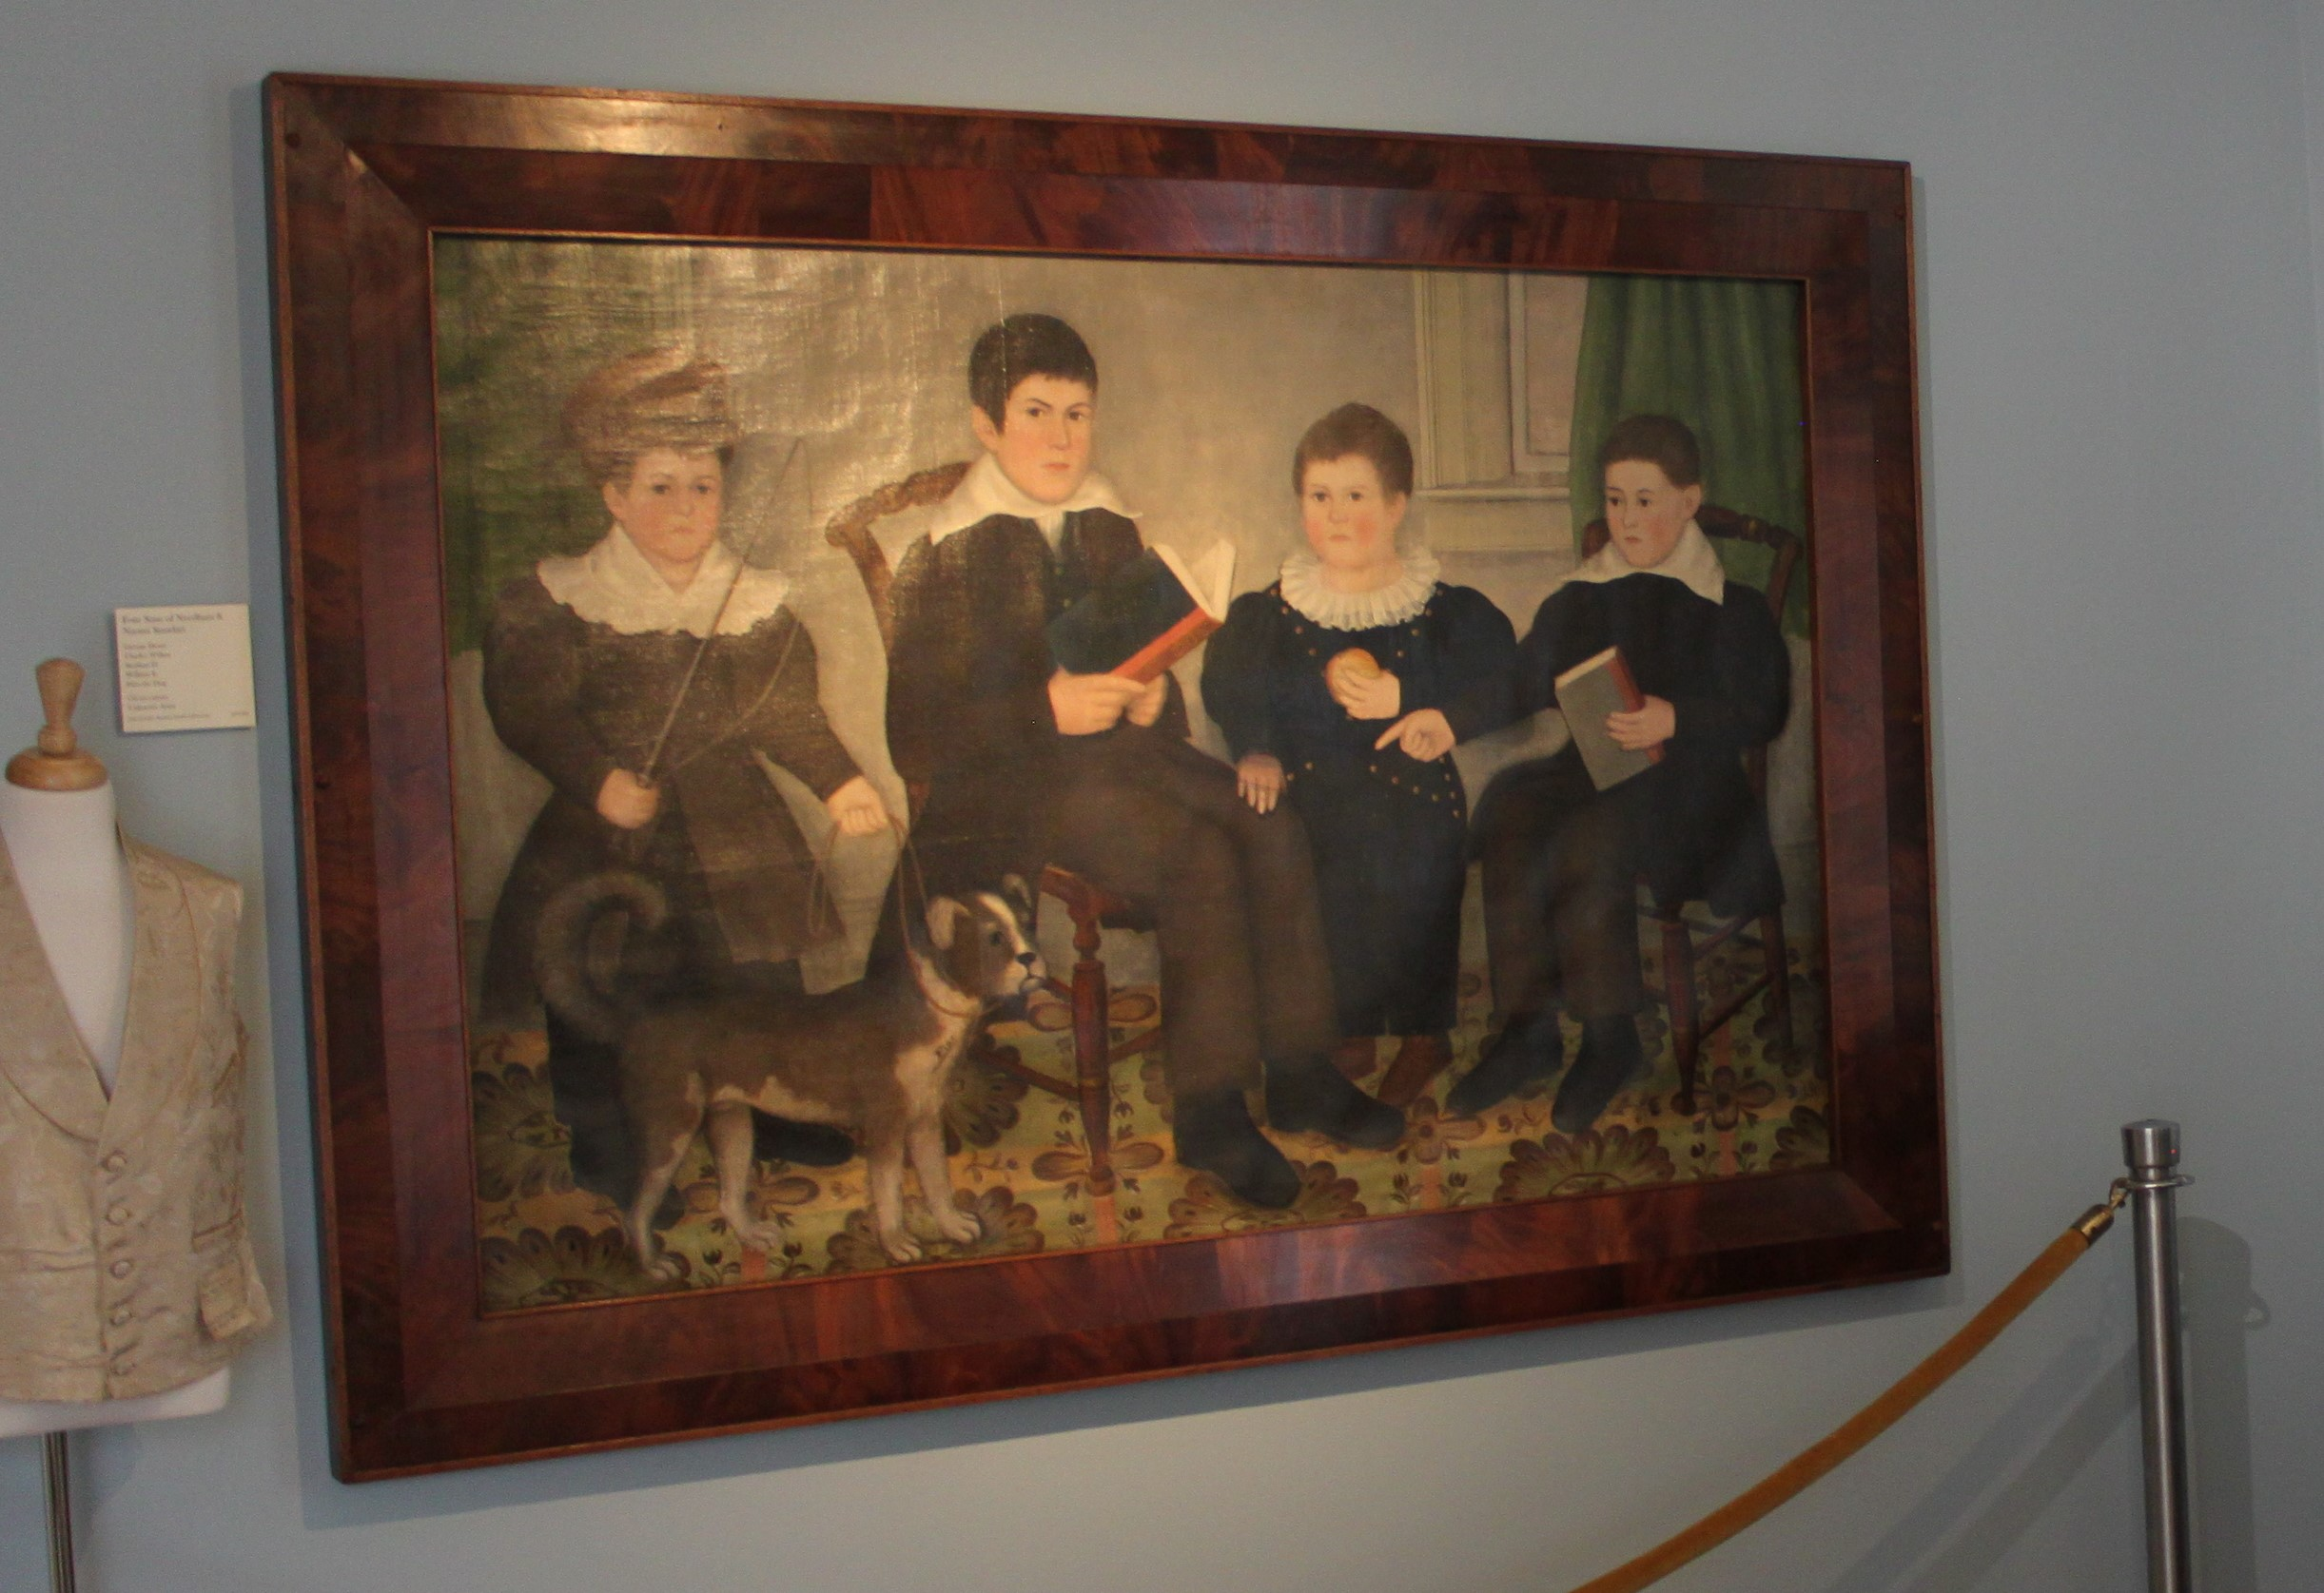 Portrait of Four Boys (American, First Half 19th Century) Unsigned. Two boys are holding books, one is holding an apple and one is holding a riding crop and standing by a dog. The background is a parlor with a patterned rug on the floor. The boys are purportedly George Henry, Charles Wilbor, Stephan H., William E. and Fido the Dog (the name of the dog is painted on the dog in the painting); the boys are the sons of Needham and Naomi Standart.